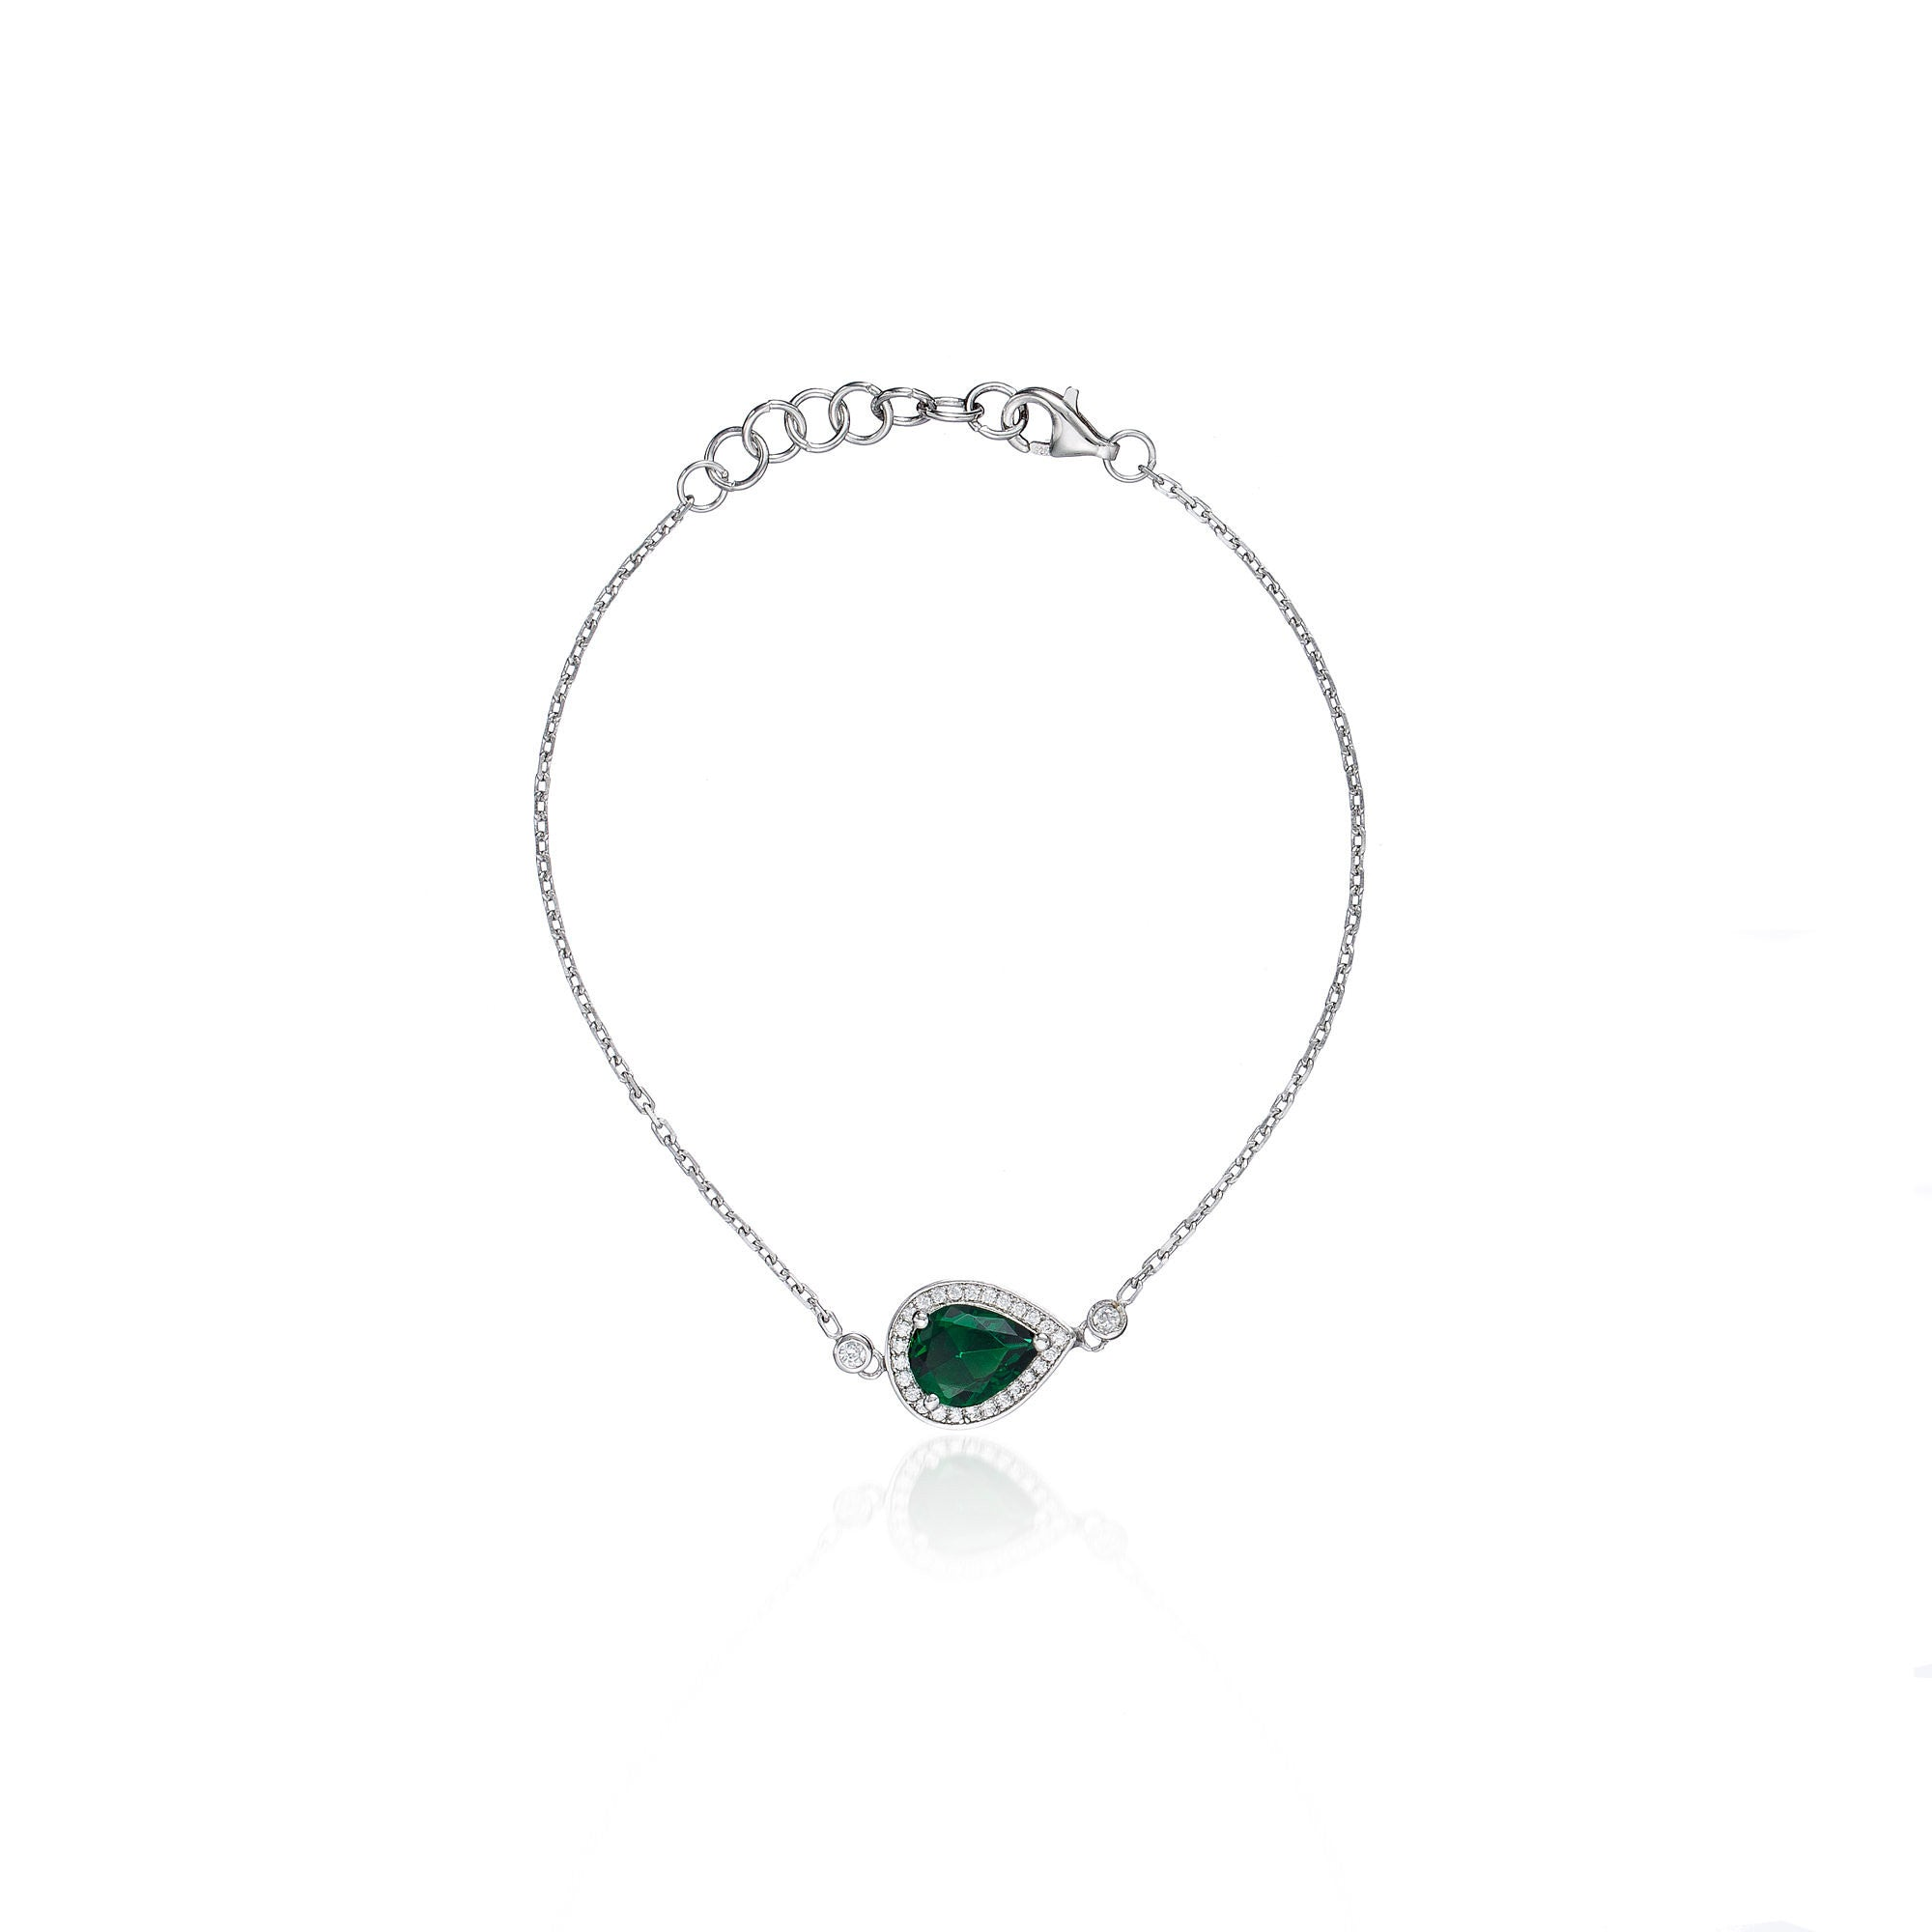 emerald bracelet seaman diamond schepps bracelets collections by mousetrap category